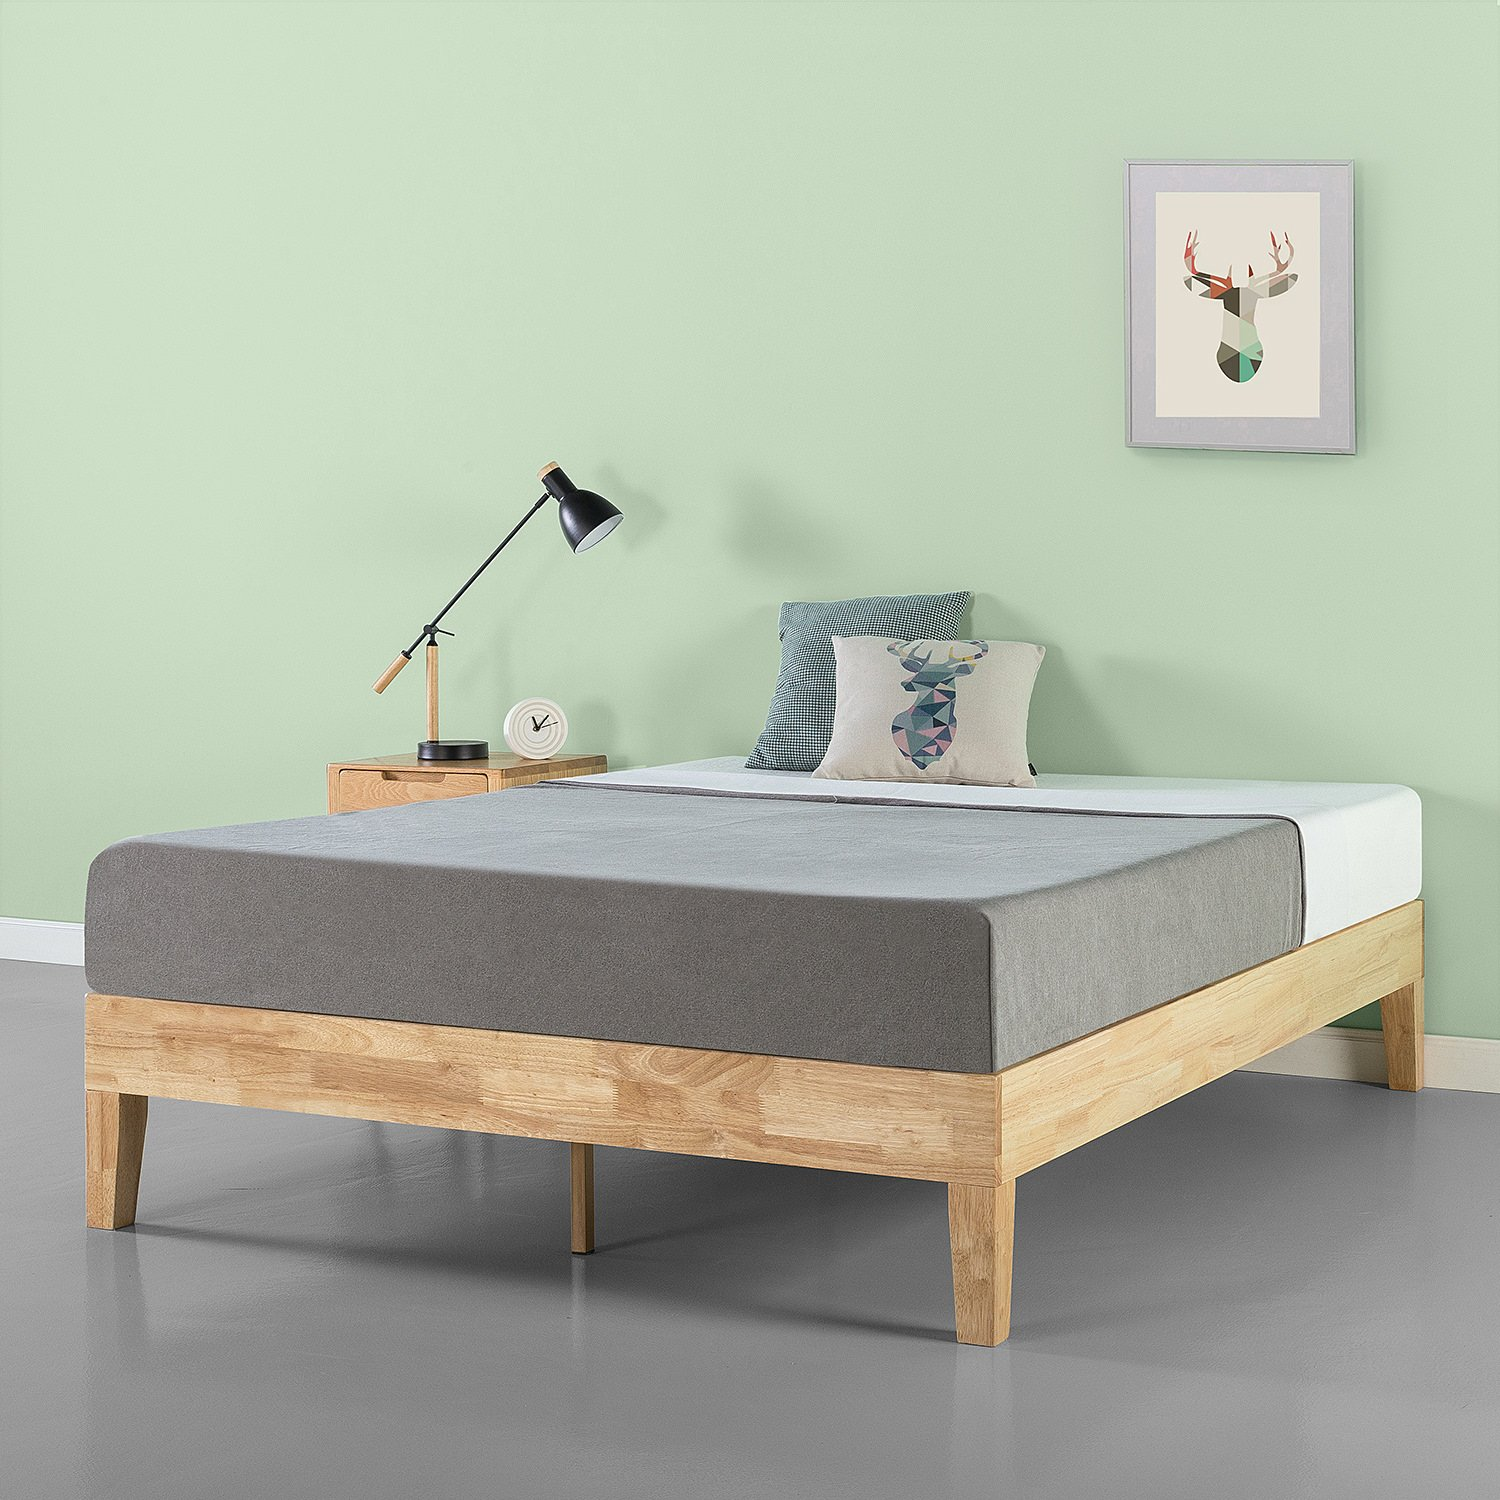 Zinus Moiz 14 Inch Deluxe Solid Wood Platform Bed Frame with Wood Slat Support / No Box Spring Needed, Full